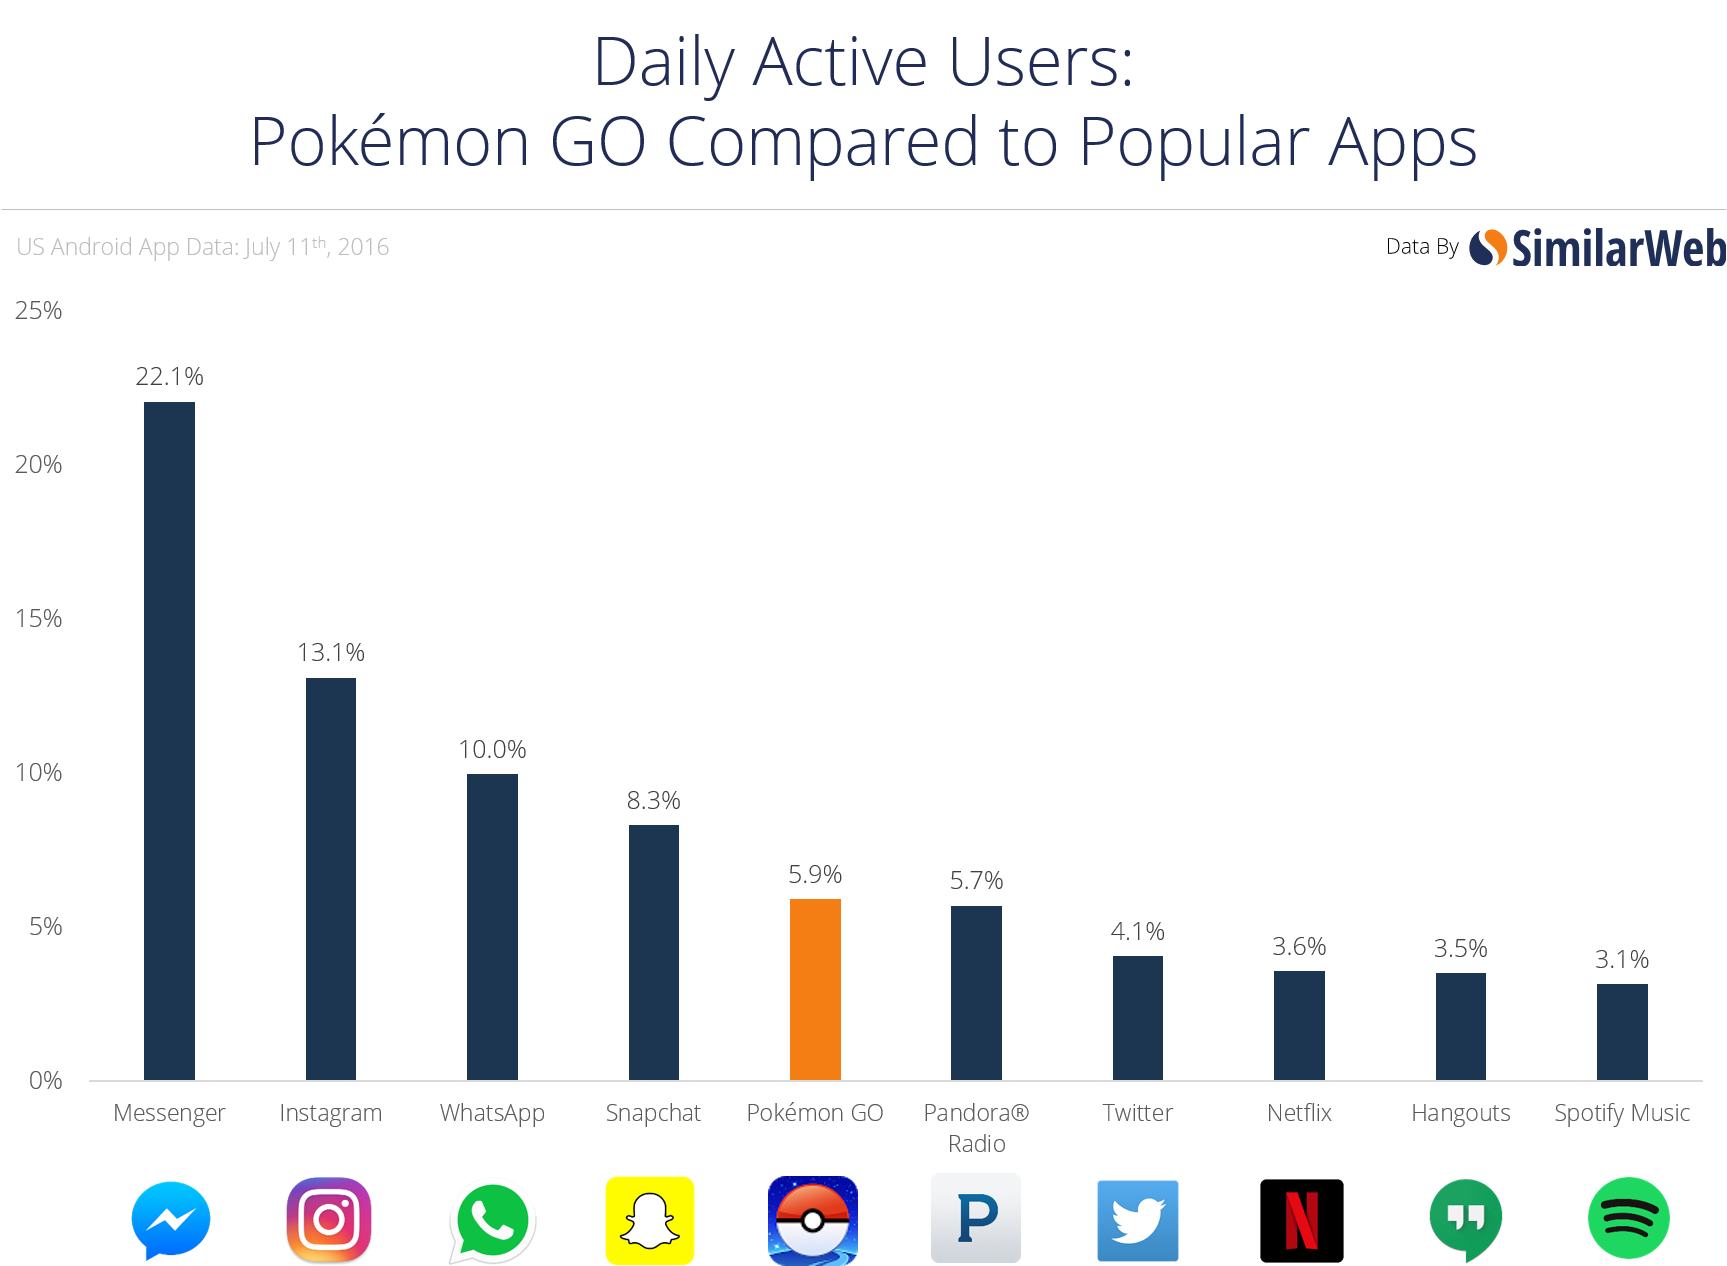 pokemon-go-and-other-apps-1